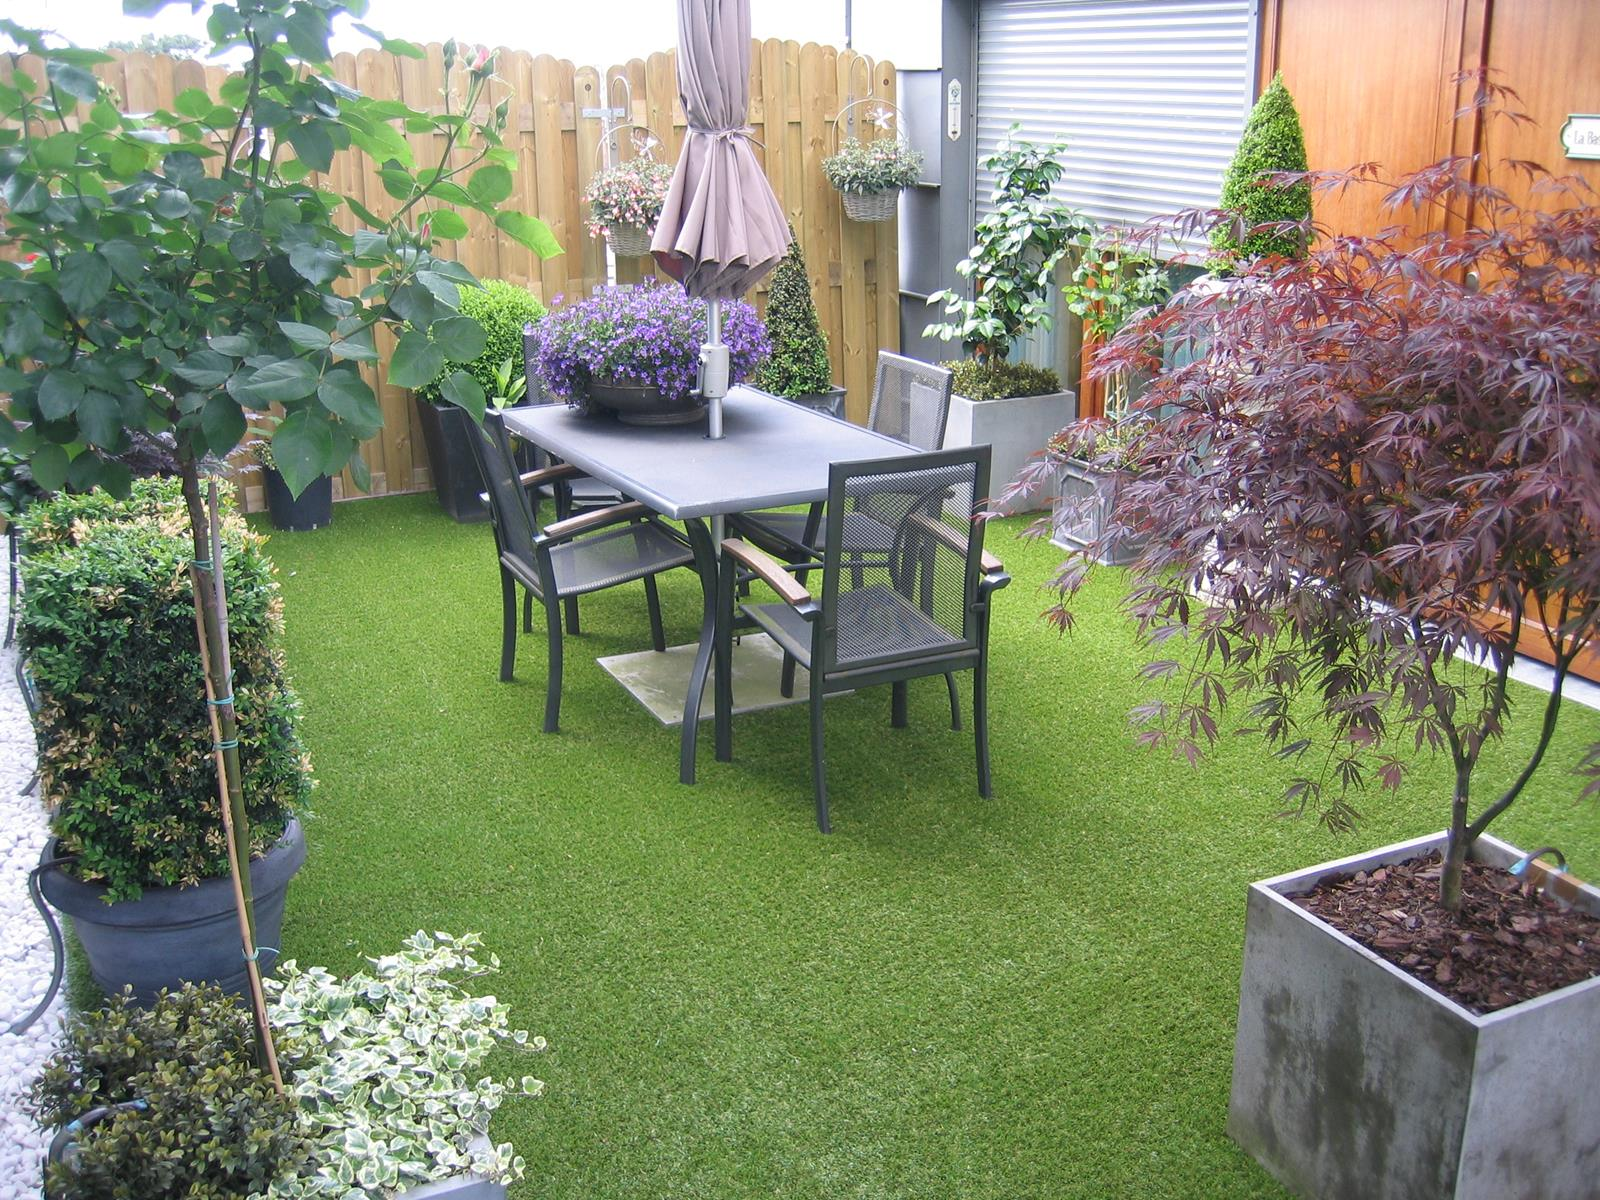 Exemples de pose de gazon synth tique chez nos clients greenside blog - Terrasse avec gazon synthetique ...